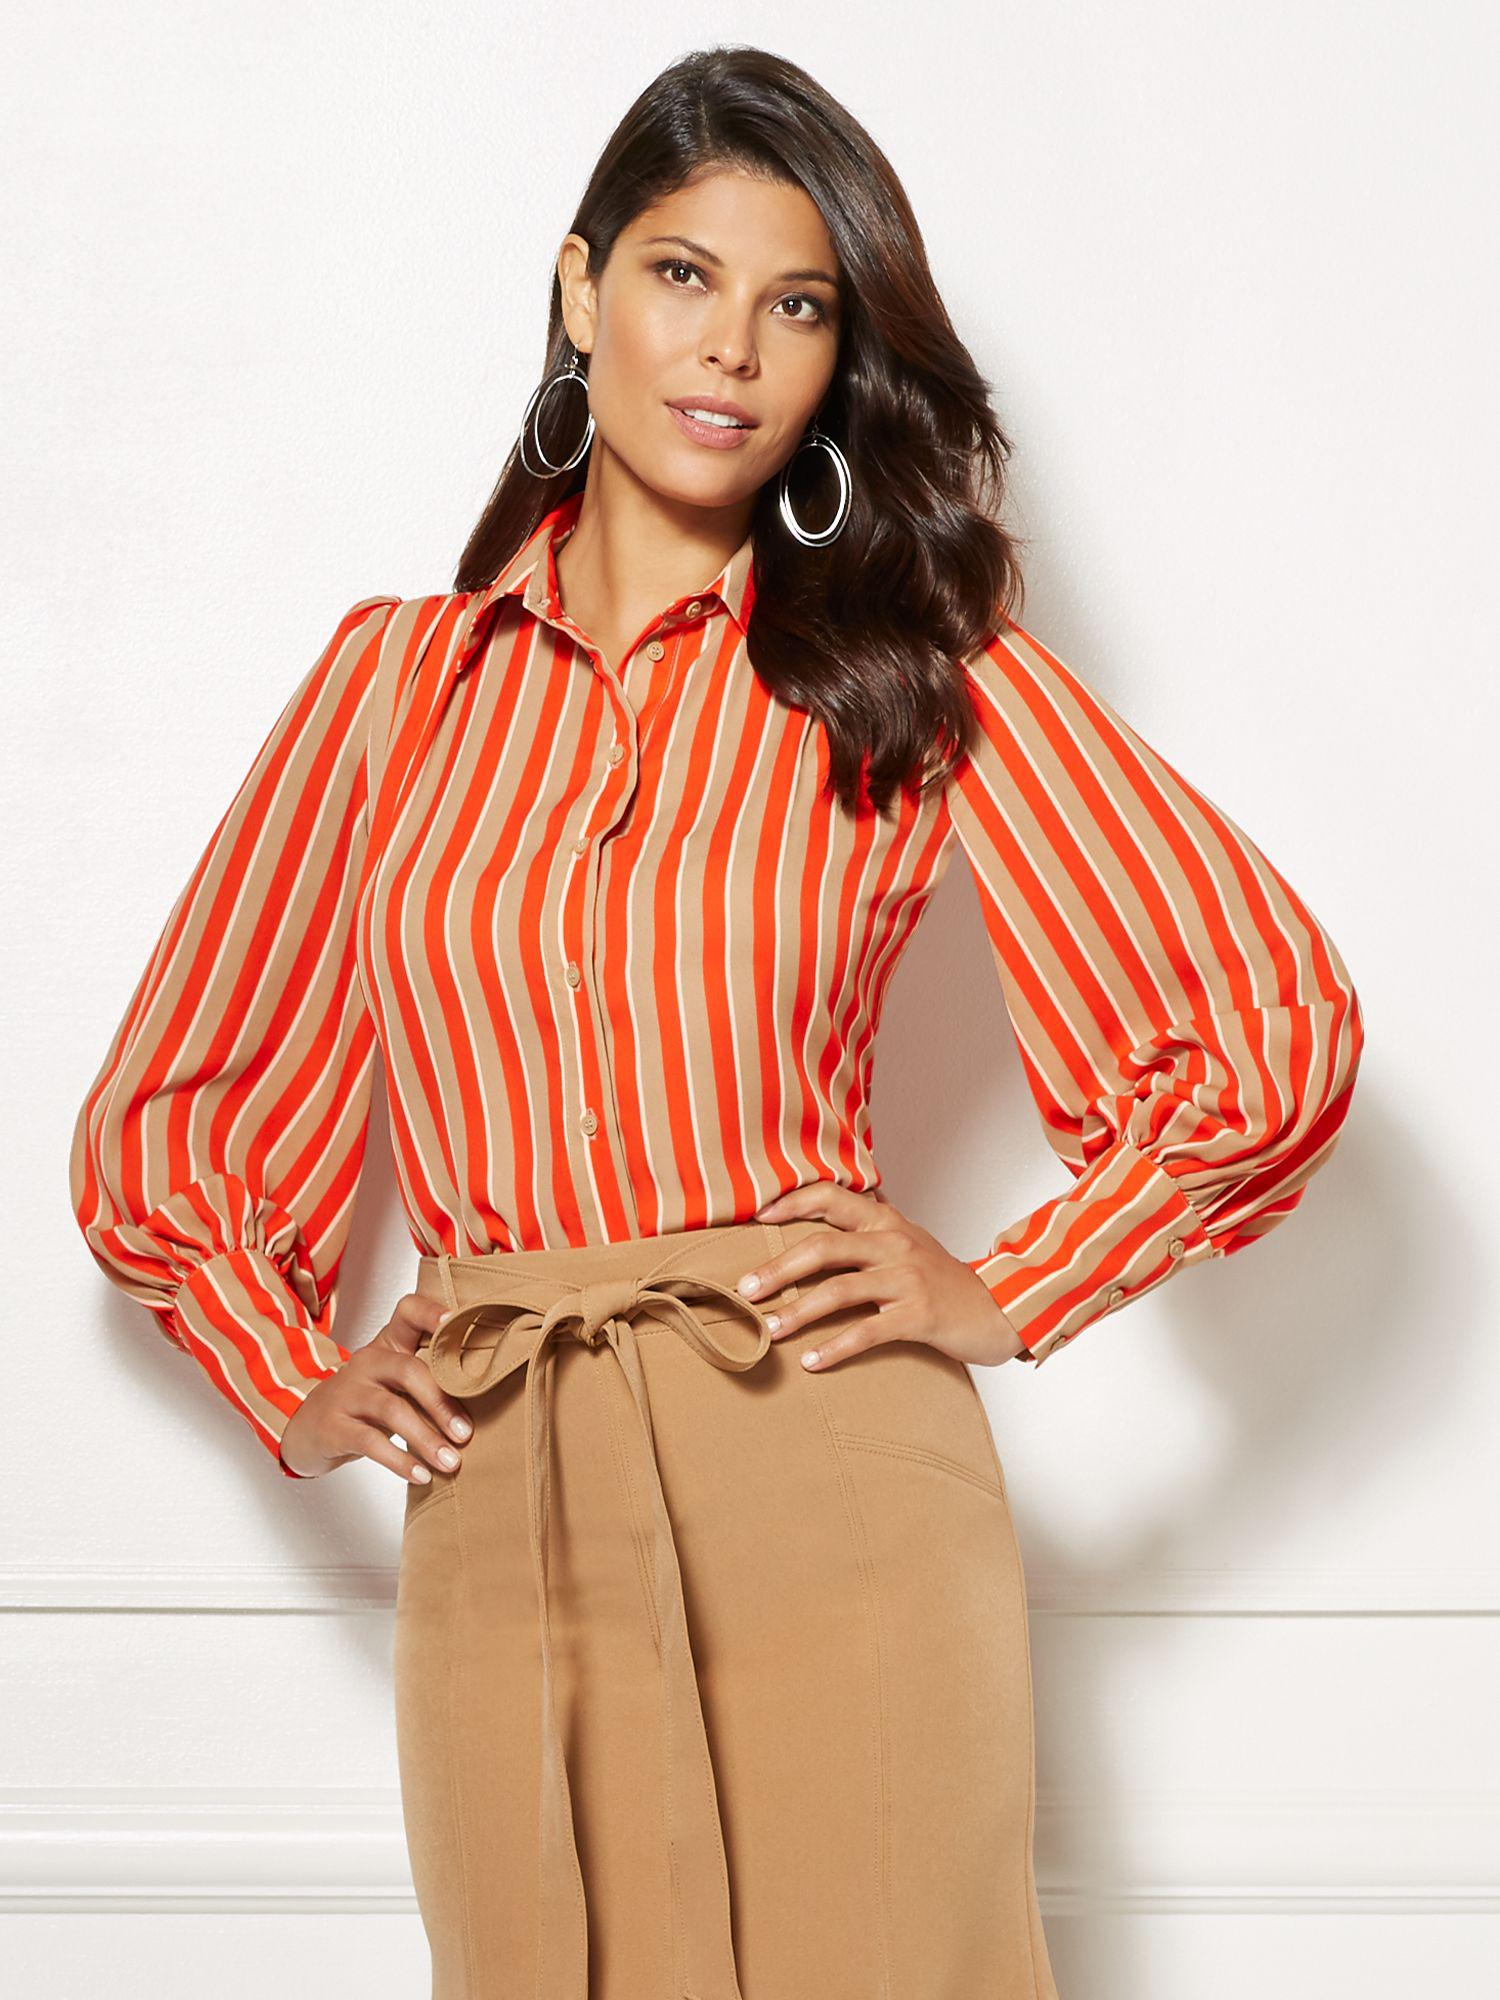 43bb4fdd832a6 Lyst - New York   Company Eva Mendes Collection - Stripe Kelsey ...